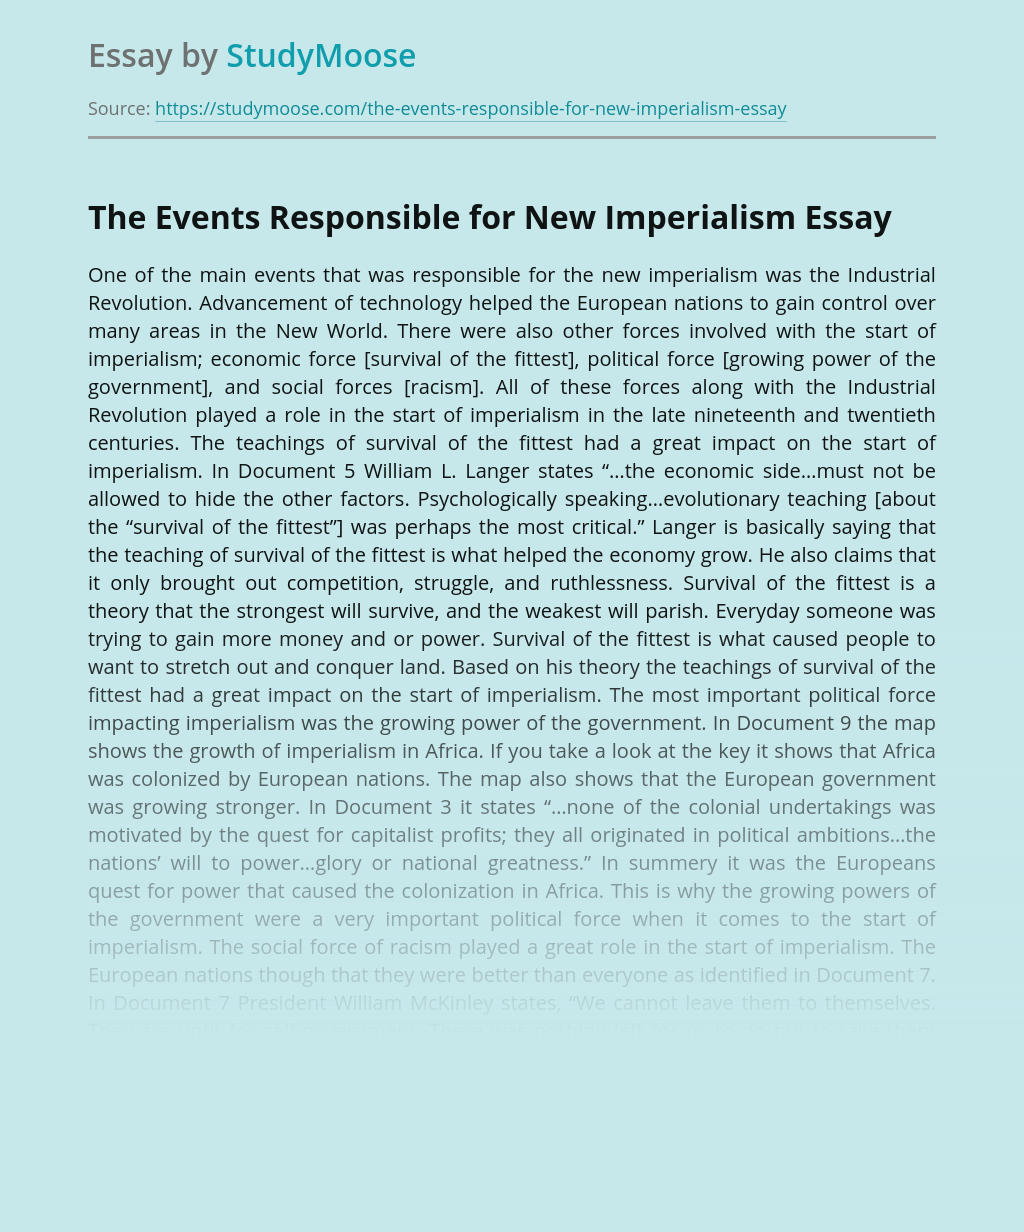 The Events Responsible for New Imperialism